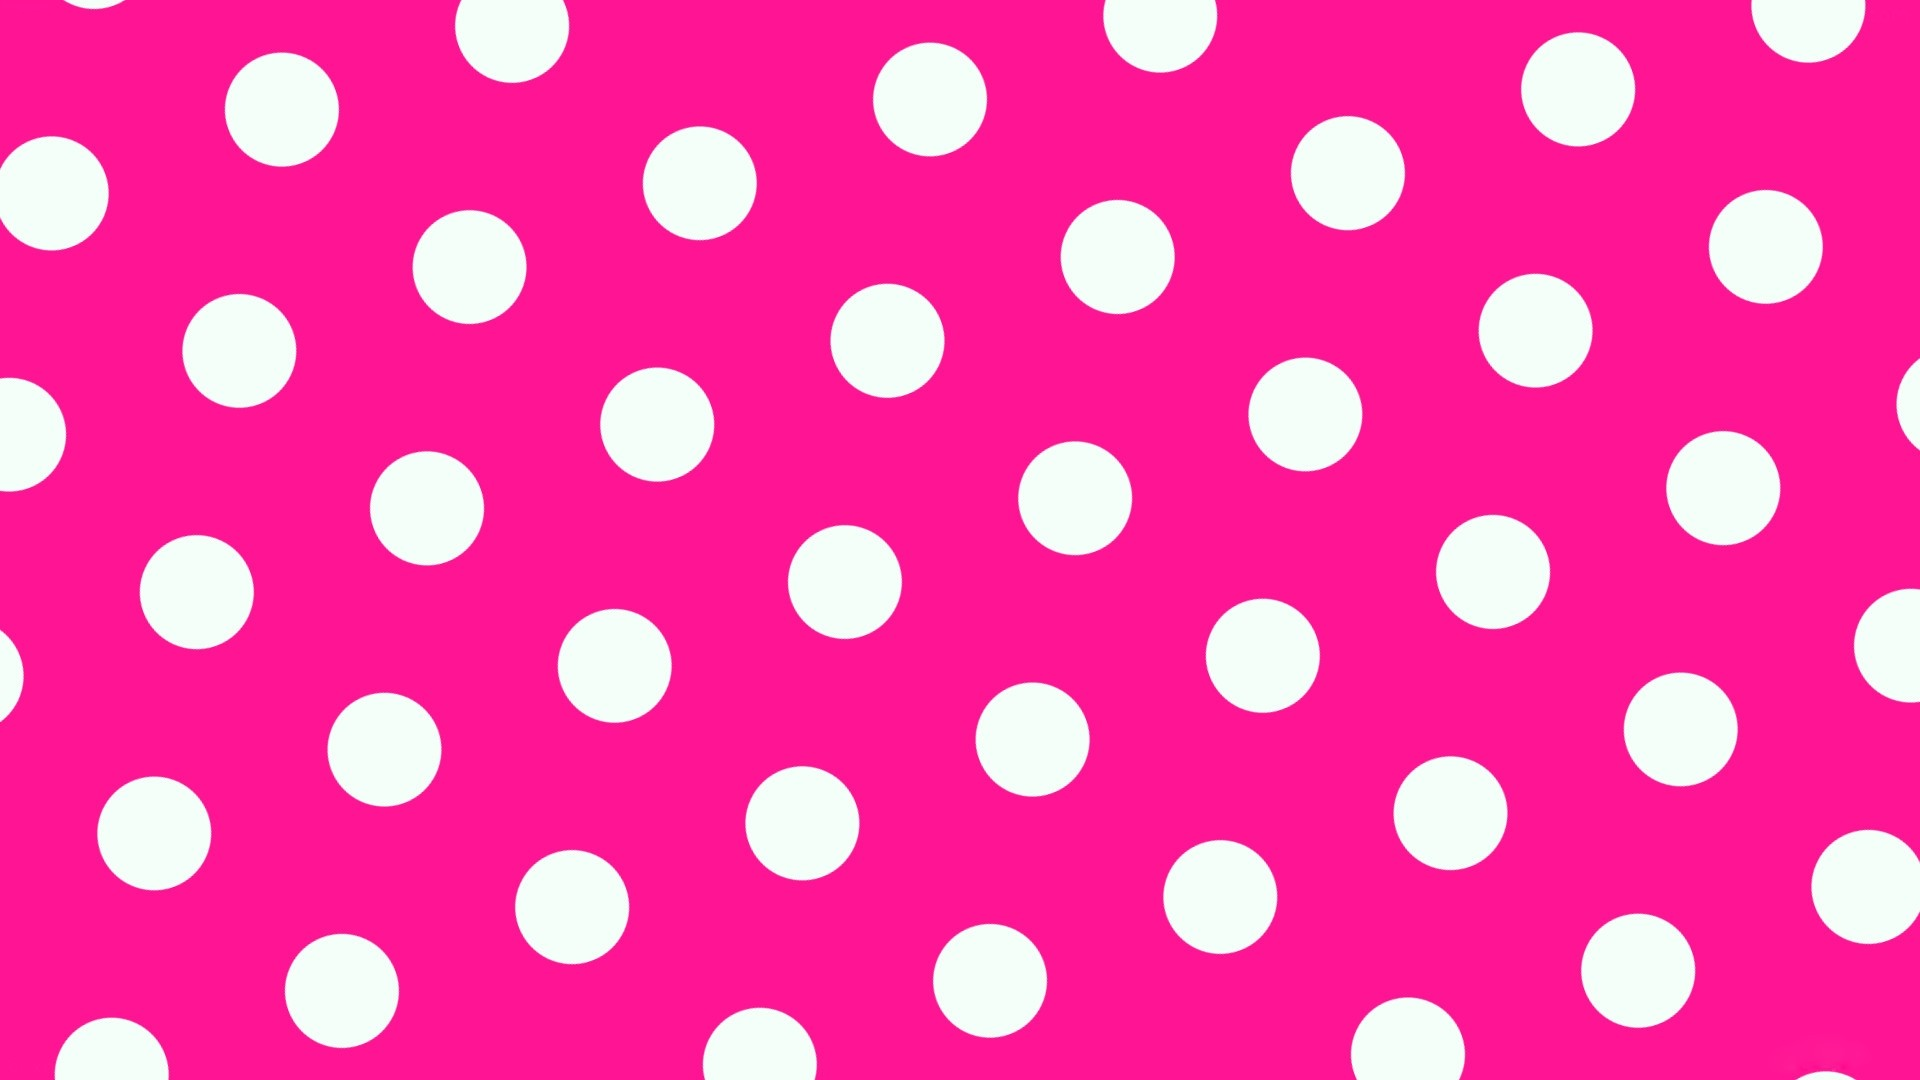 Polka Dot Picture